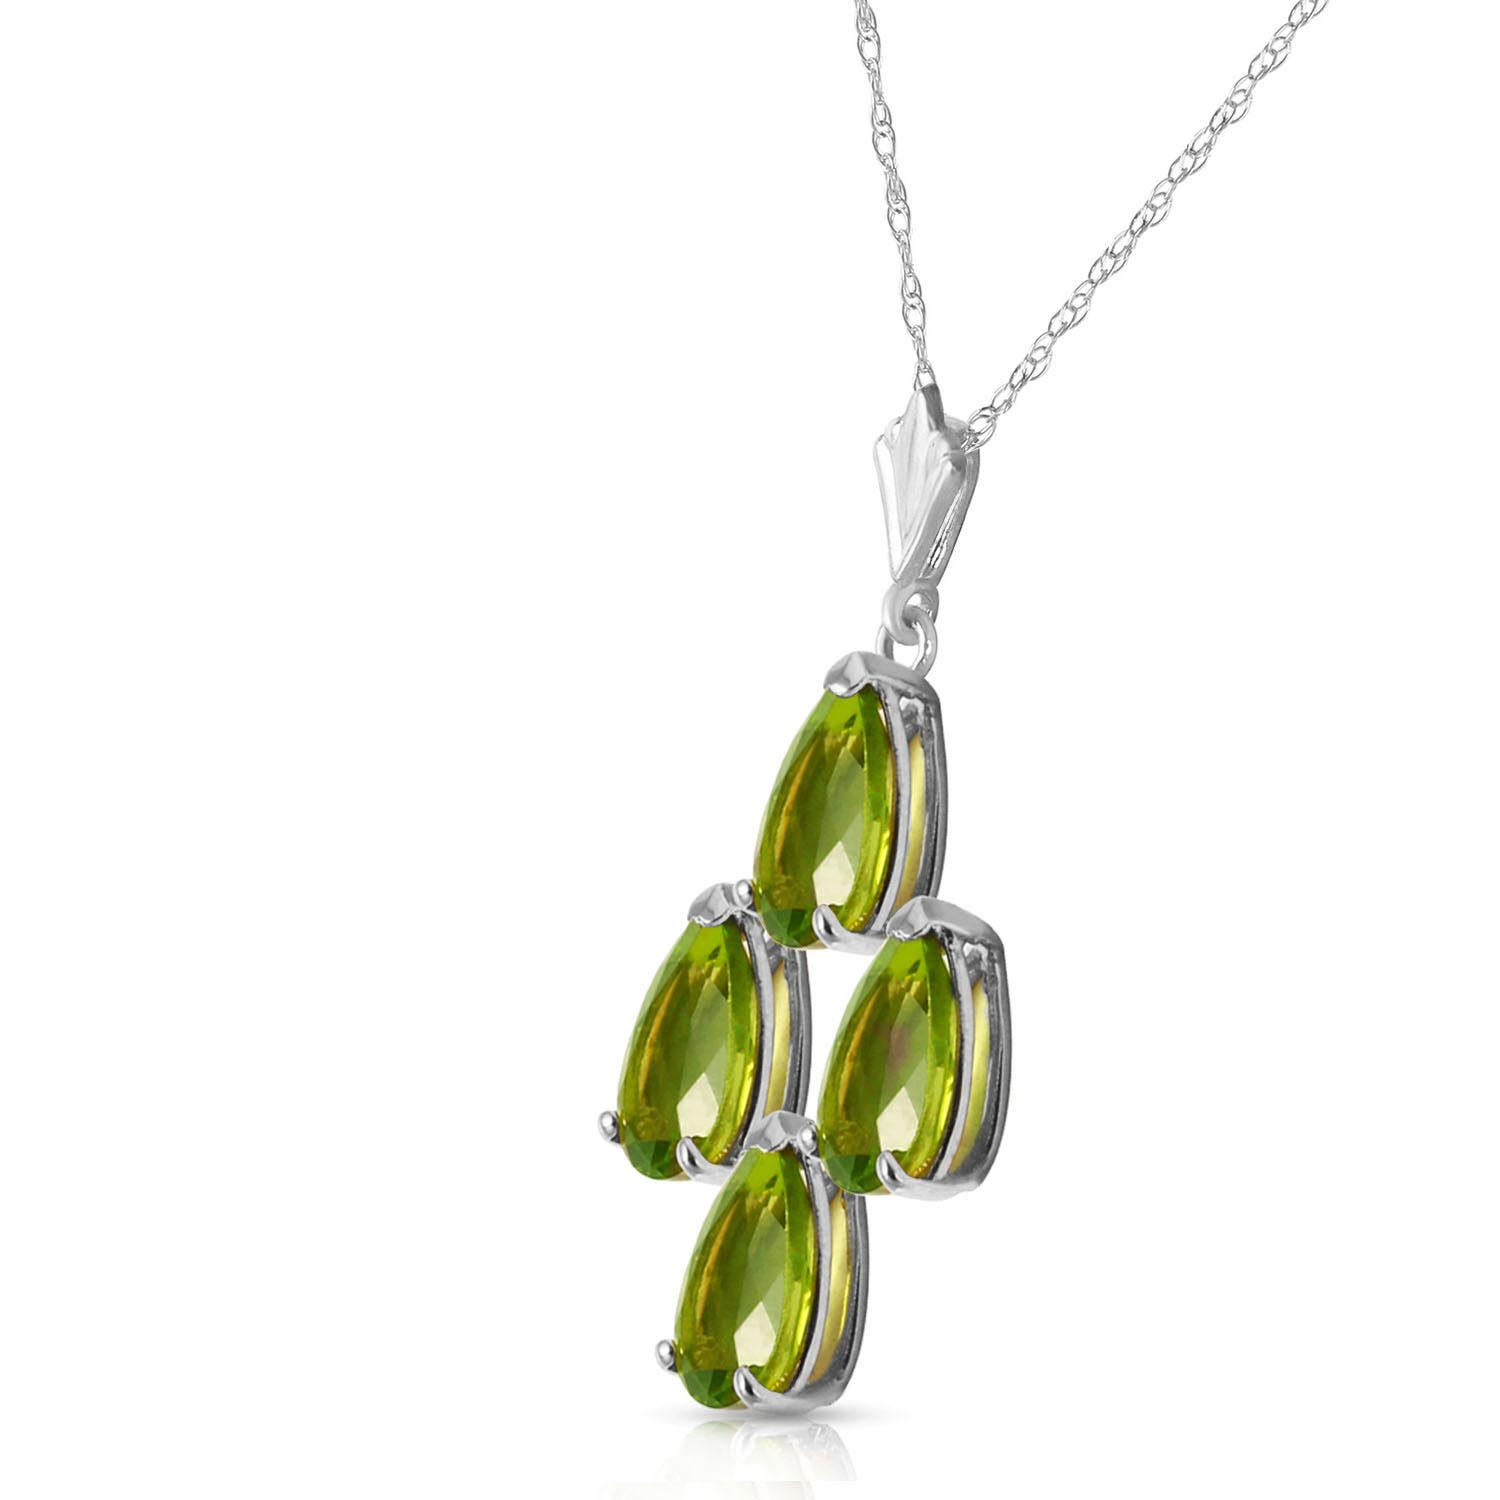 Pear Cut Peridot Pendant Necklace 2.25ctw in 9ct White Gold